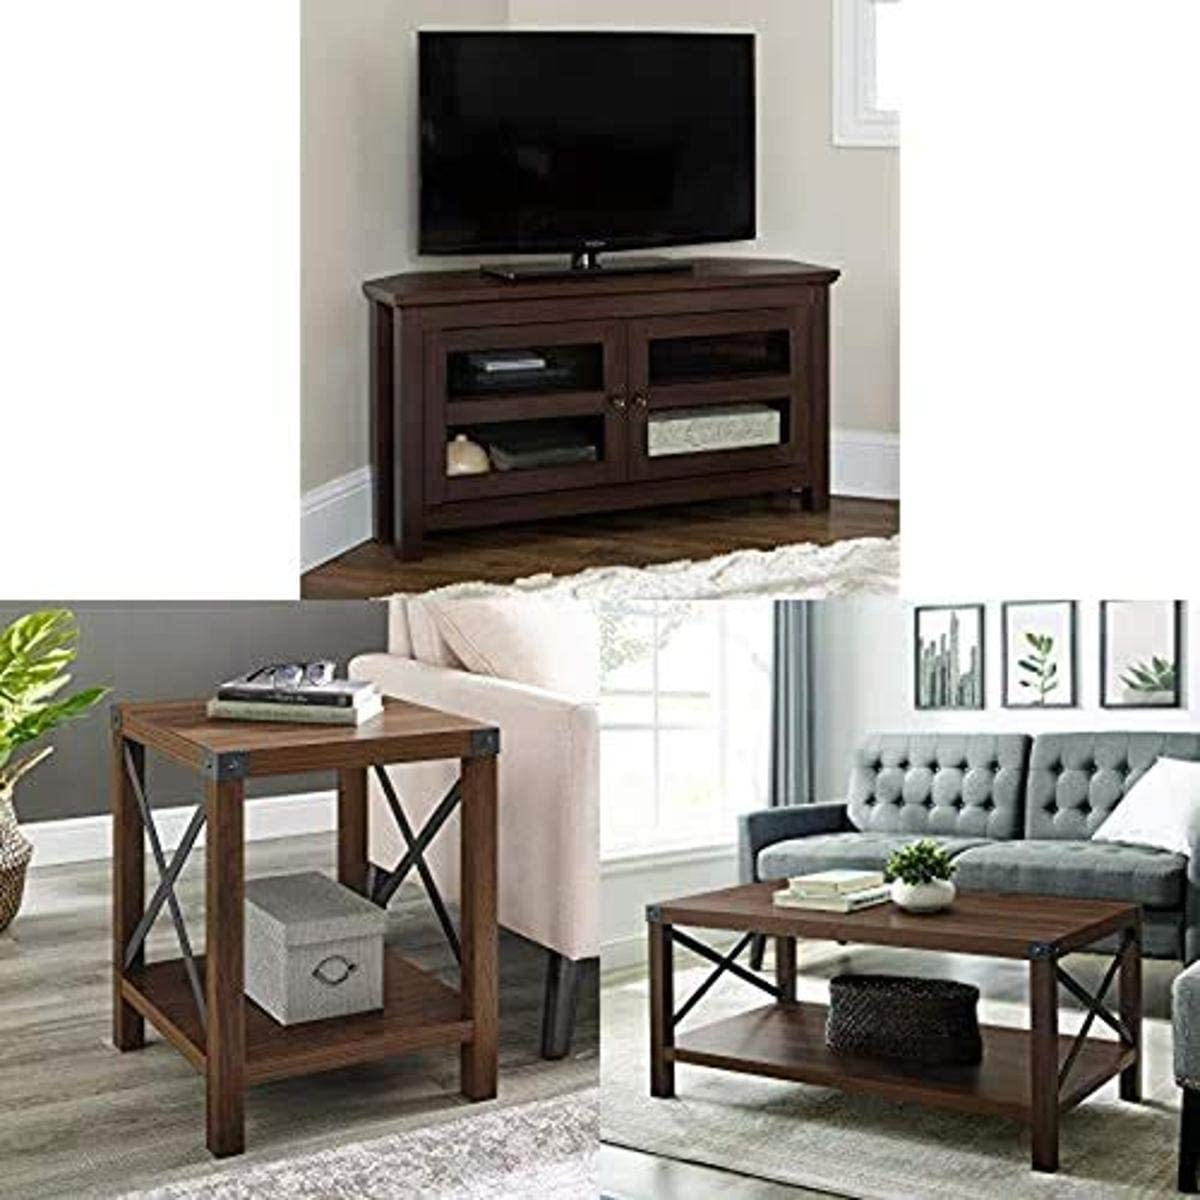 "Walker Edison Furniture Farmhouse Wood Corner Universal Stand for TV, 44 Inch with Round Metal and Accent Small End Table, 18"" and Rectangle Accent Coffee Table Ottoman Storage Shelf, 40"" Dark Walnut"